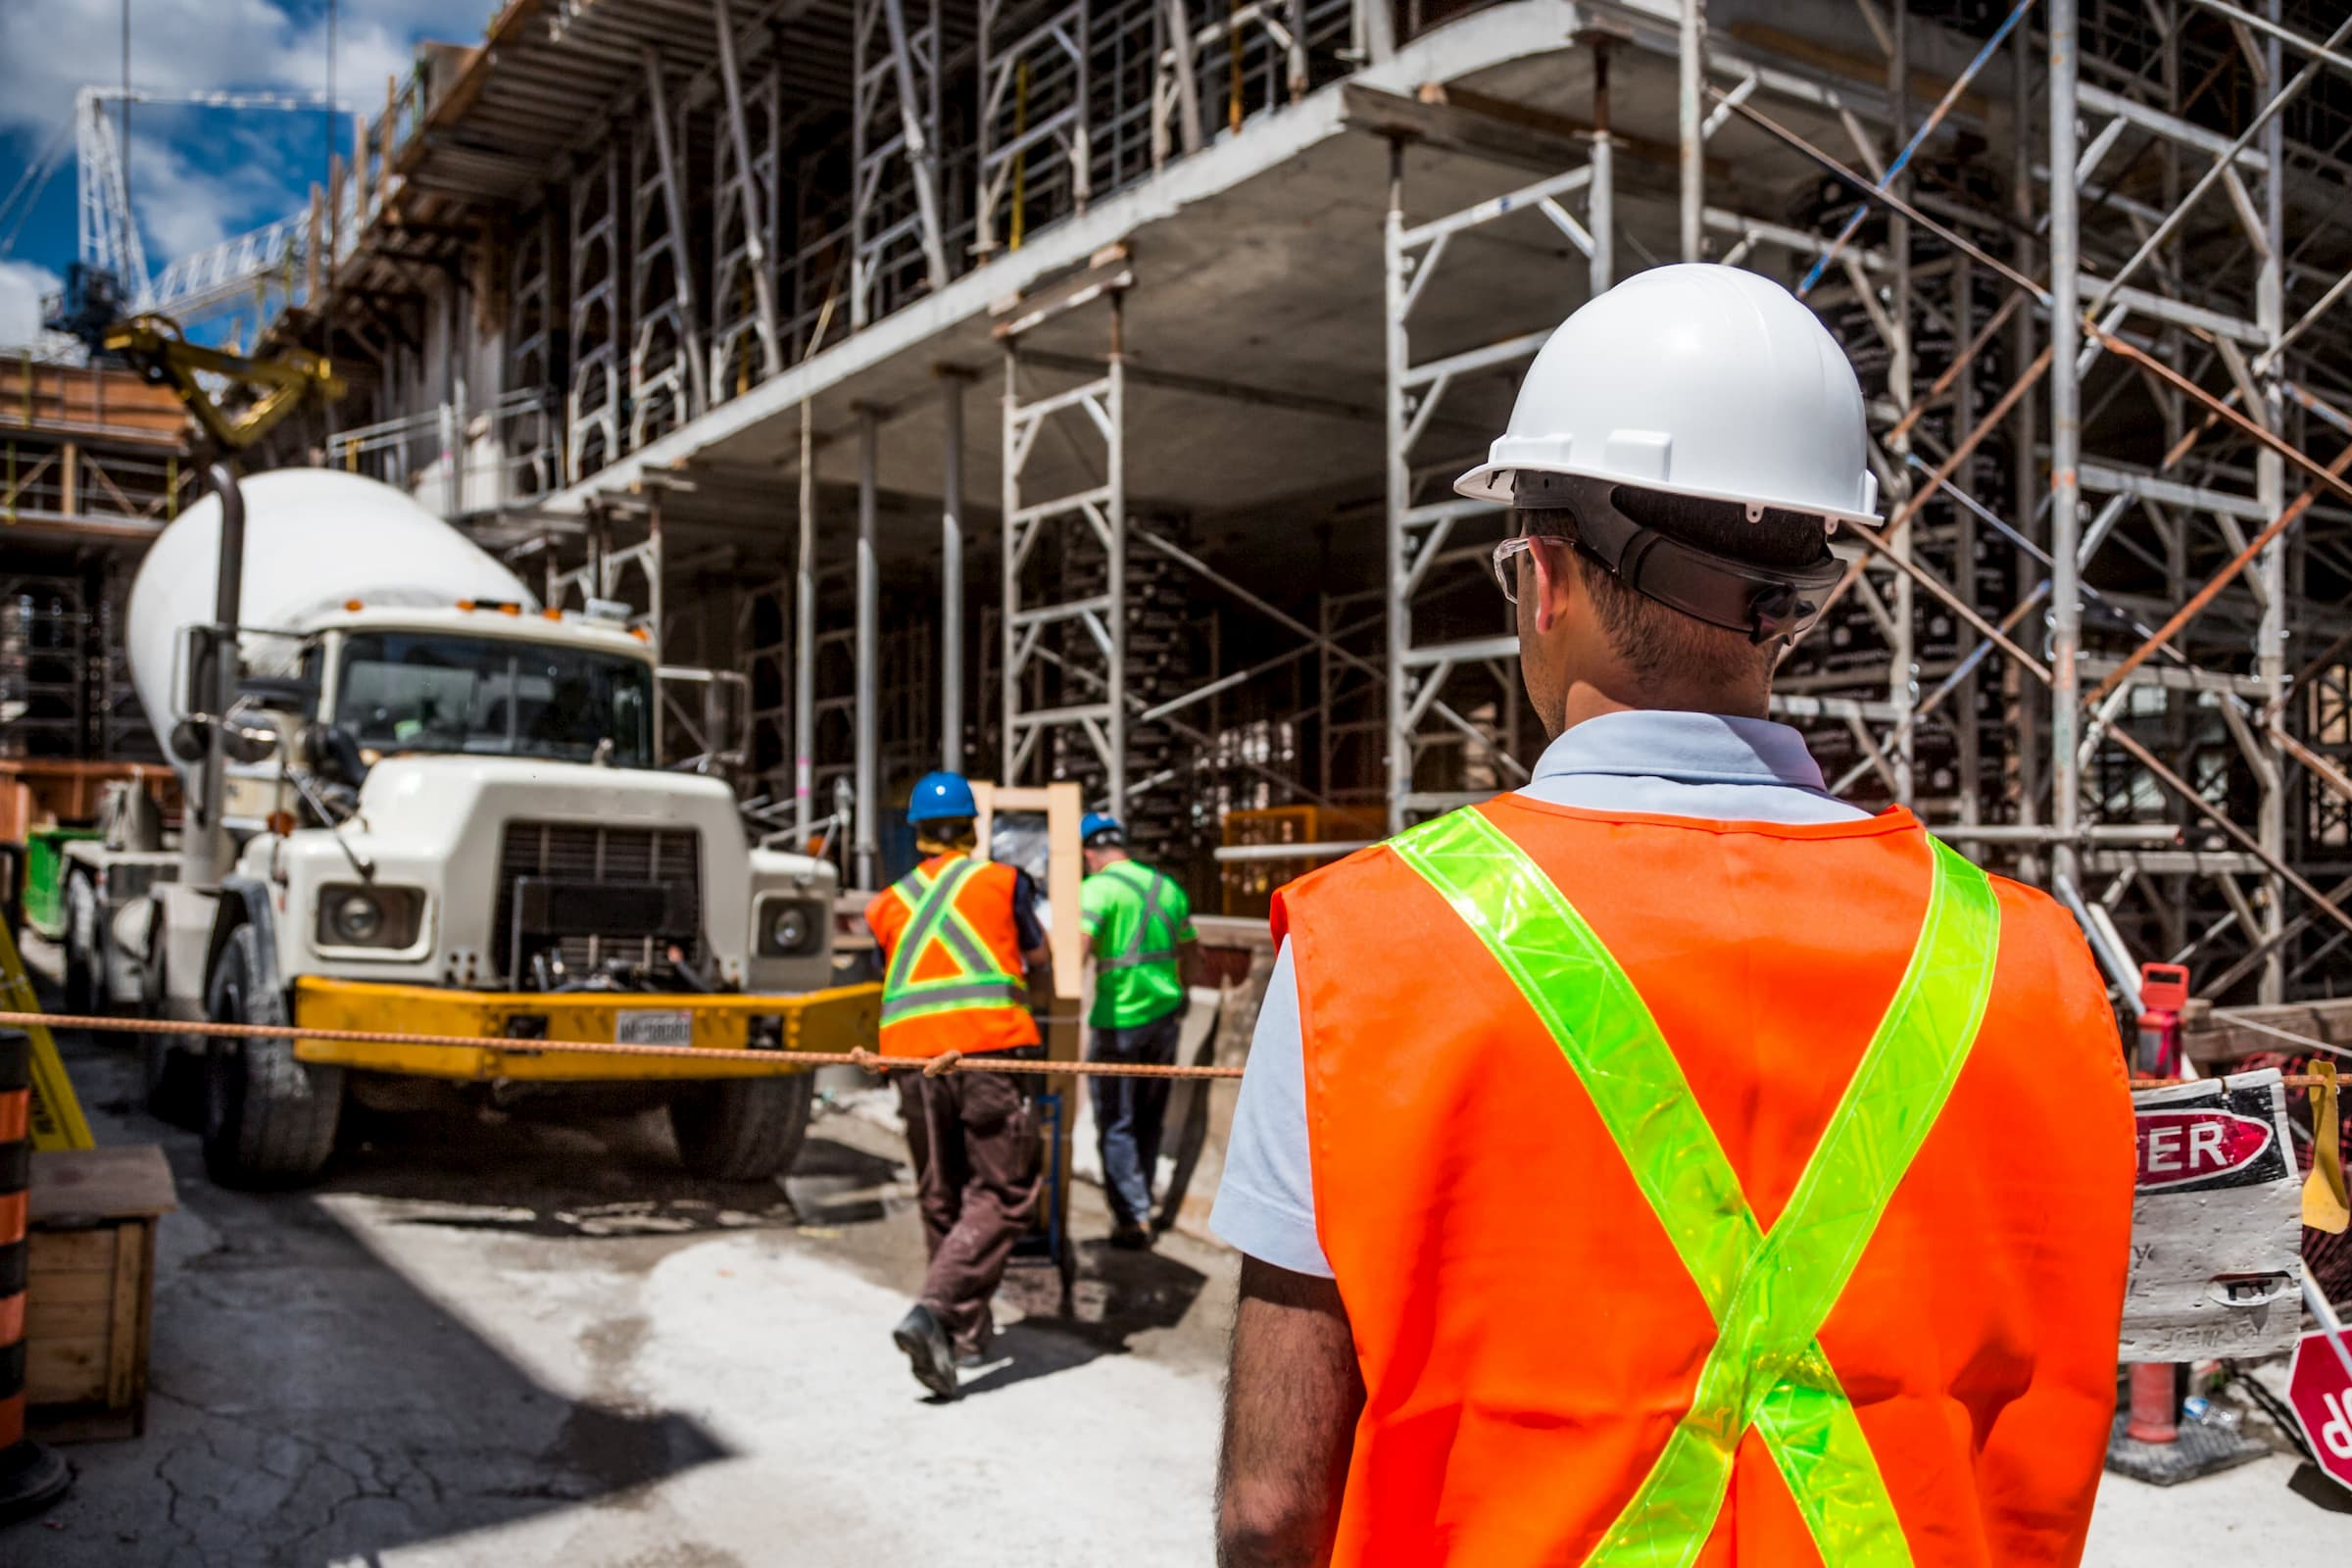 construction crew with backs to camera to show occupational medicine stock image